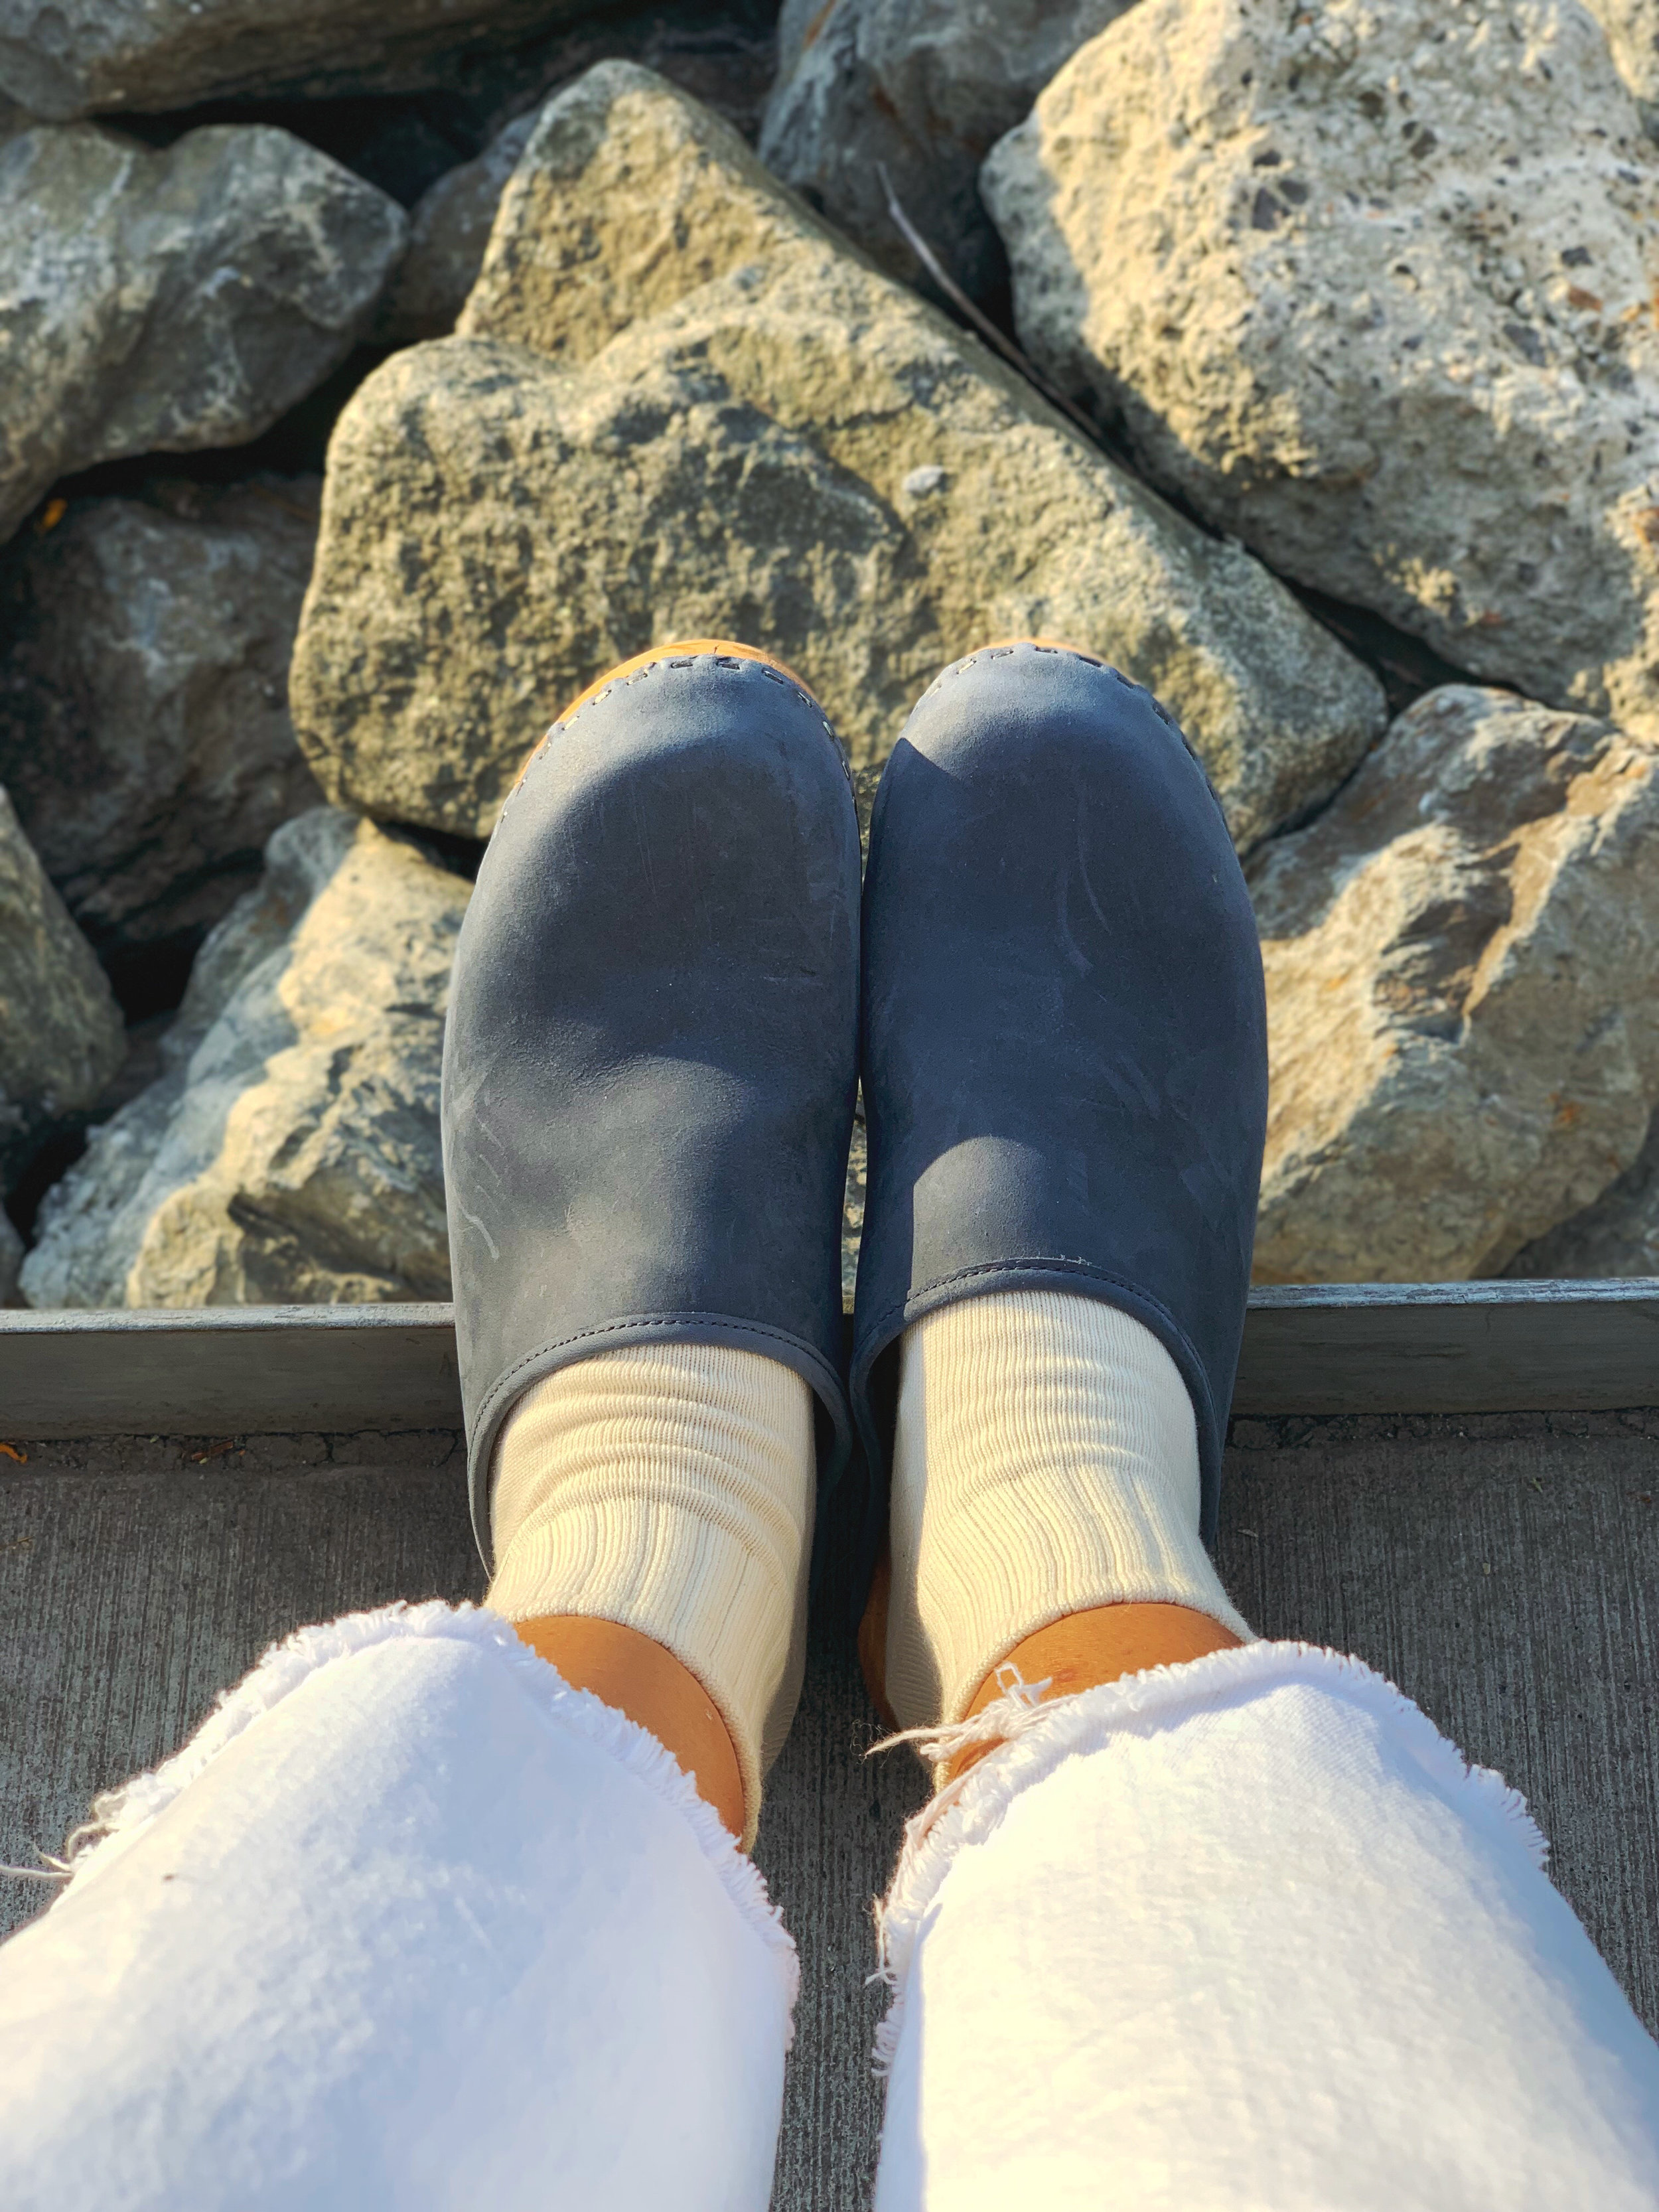 Dark blue clogs, cream socks, white jeans, in front of rocks at water's edge